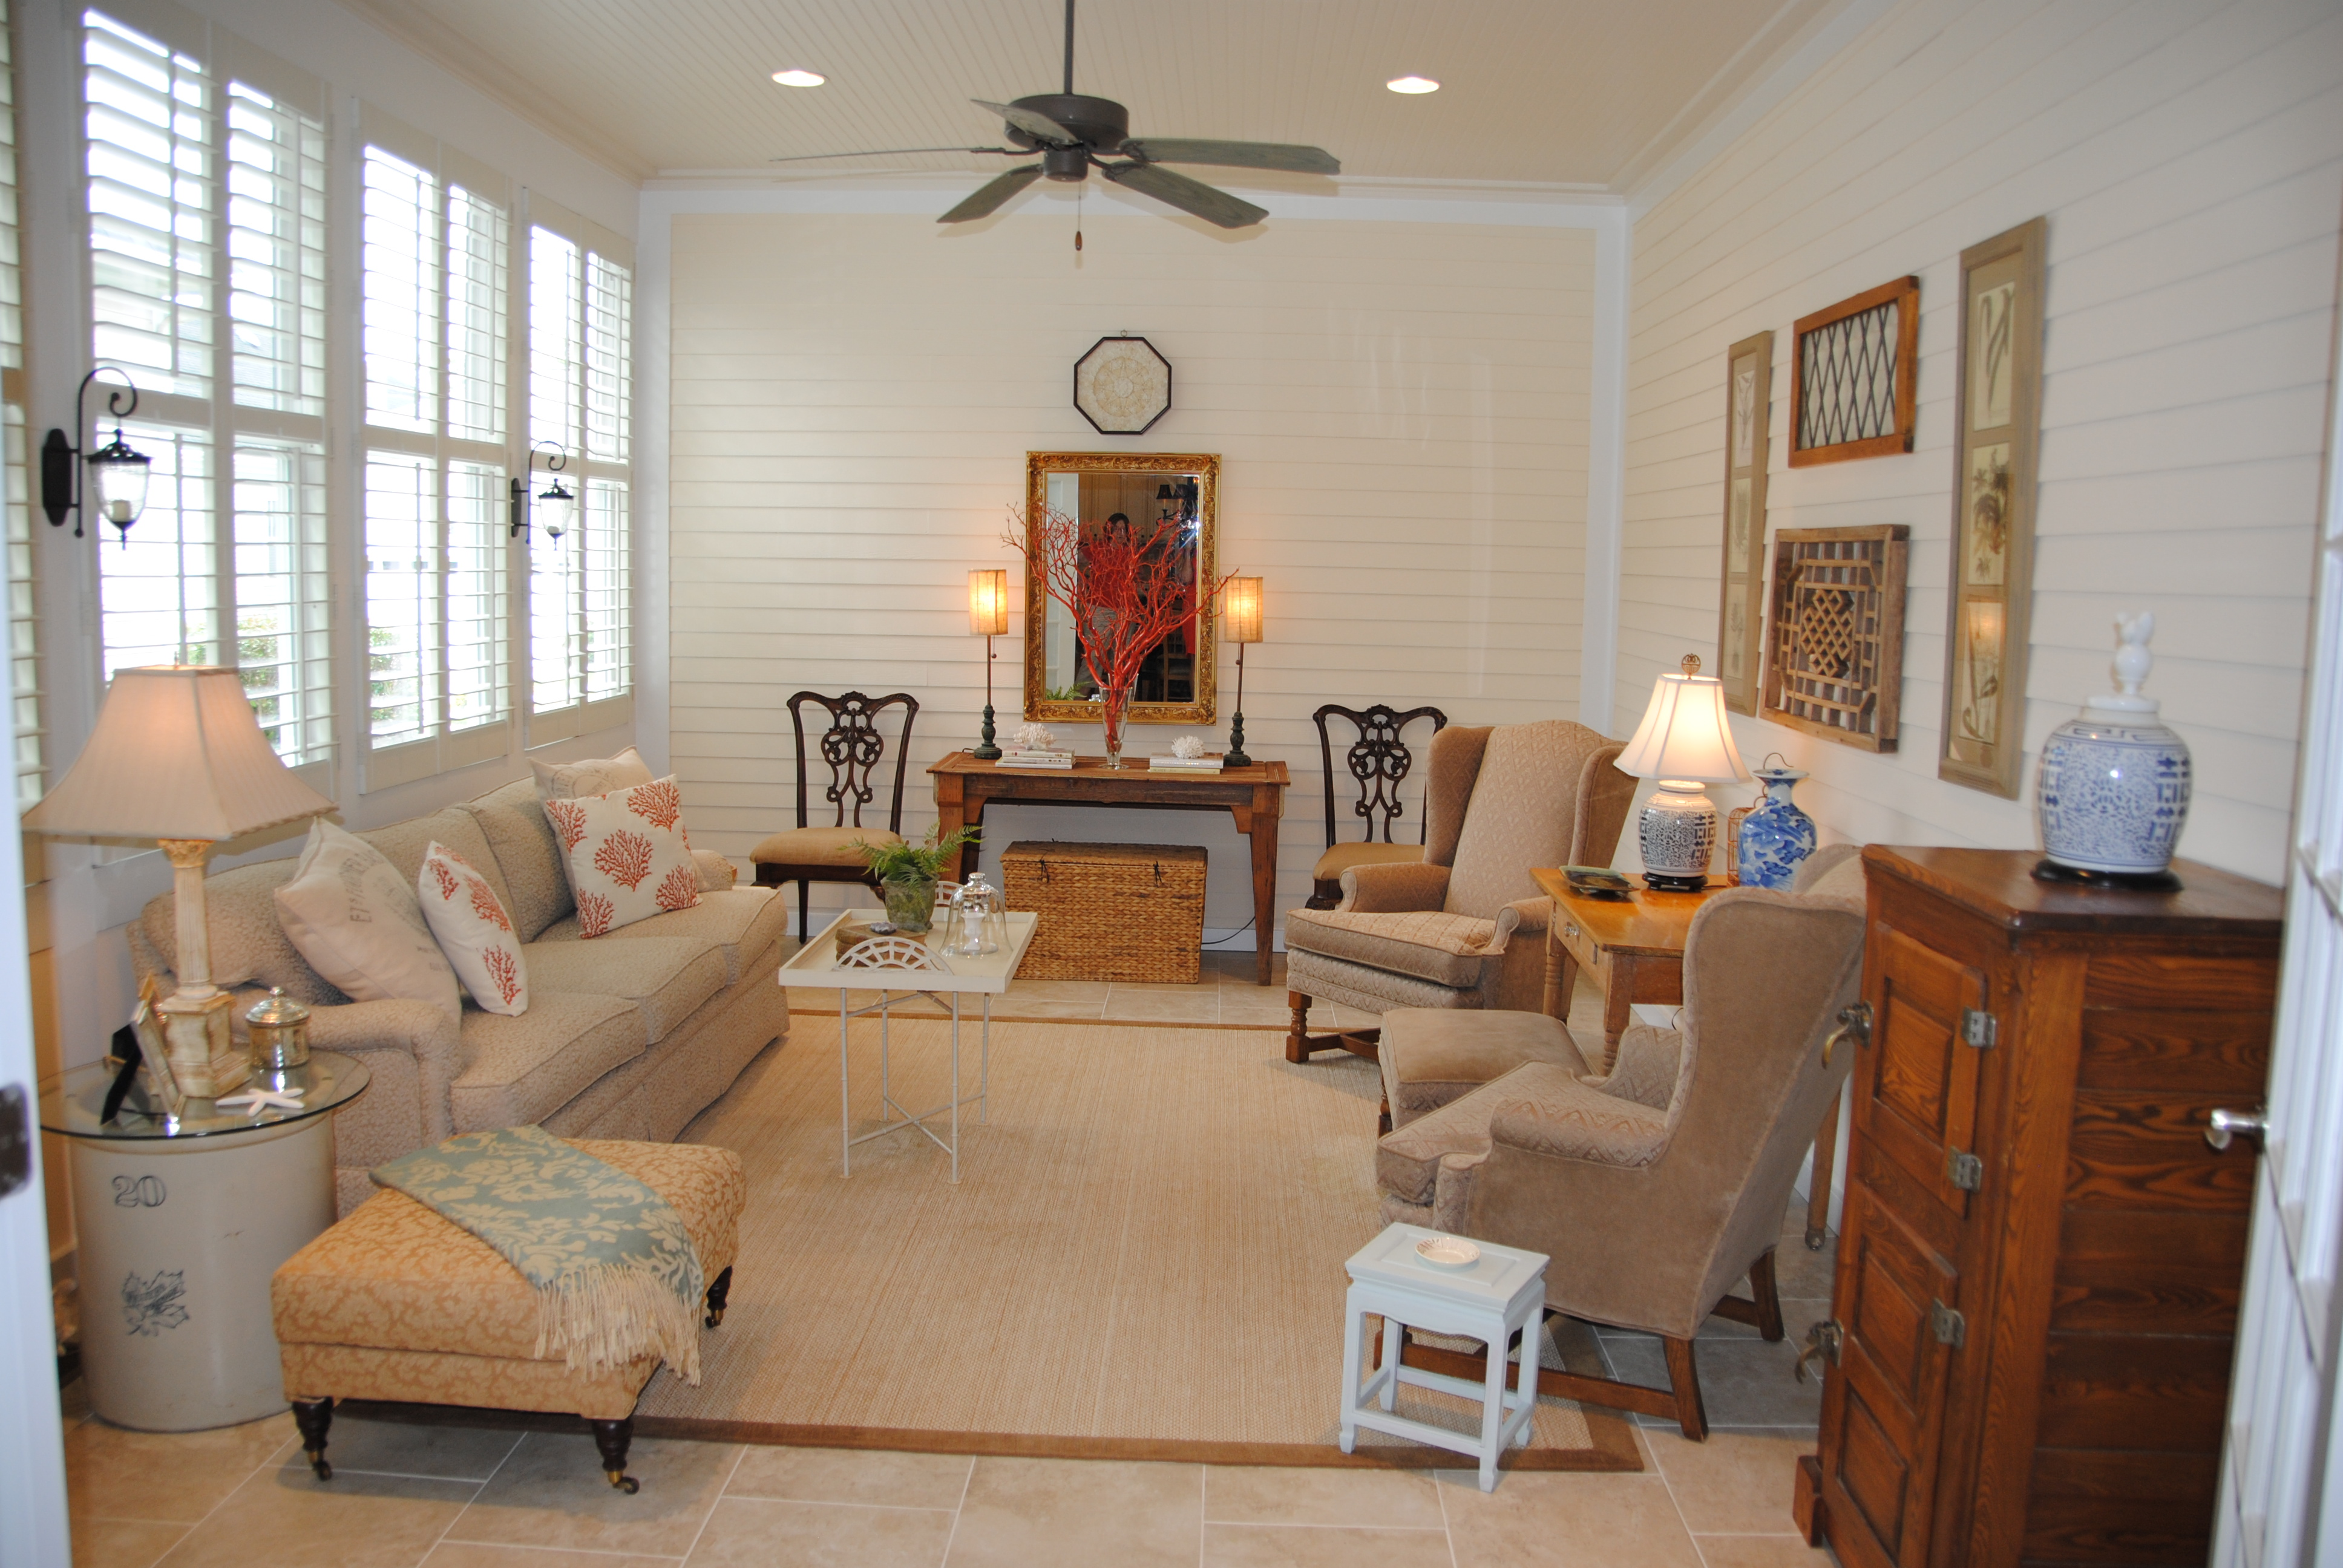 In november we added plantation shutters and i furnished with a sofa - I Put Neutral Travertine Like Tile On The Floor Painted The Walls A Soft Cream And Kept The Plantation Shutters From Before I Asked The Contractor To